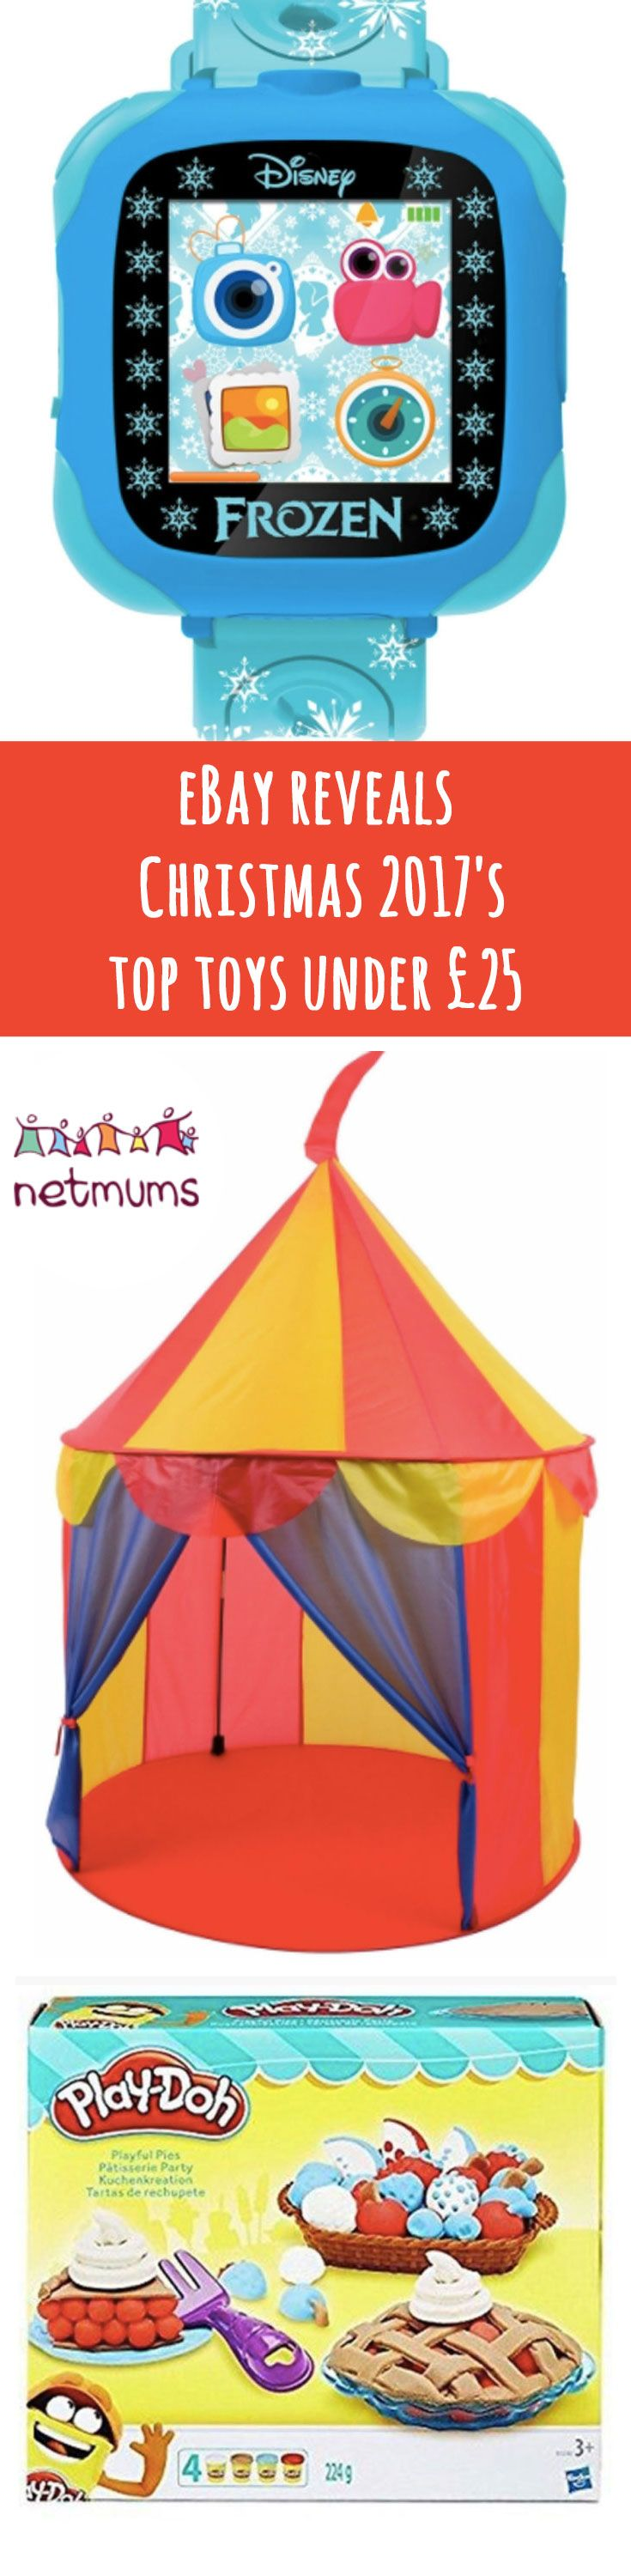 Online marketplace eBay has revealed its top toys for Christmas 2017 - and the good news is that they're all under £25!It's that time of year again! Everyone's starting to think about their Christmas shopping and wanting to get the best toys before they go out of stock.And if you're looking for toys that are under a certain price, then this eBay list is for you.All the toys included in this list are under £25, such as a Disney Frozen Camera Watch and a Pop up indoor Circus Tent.